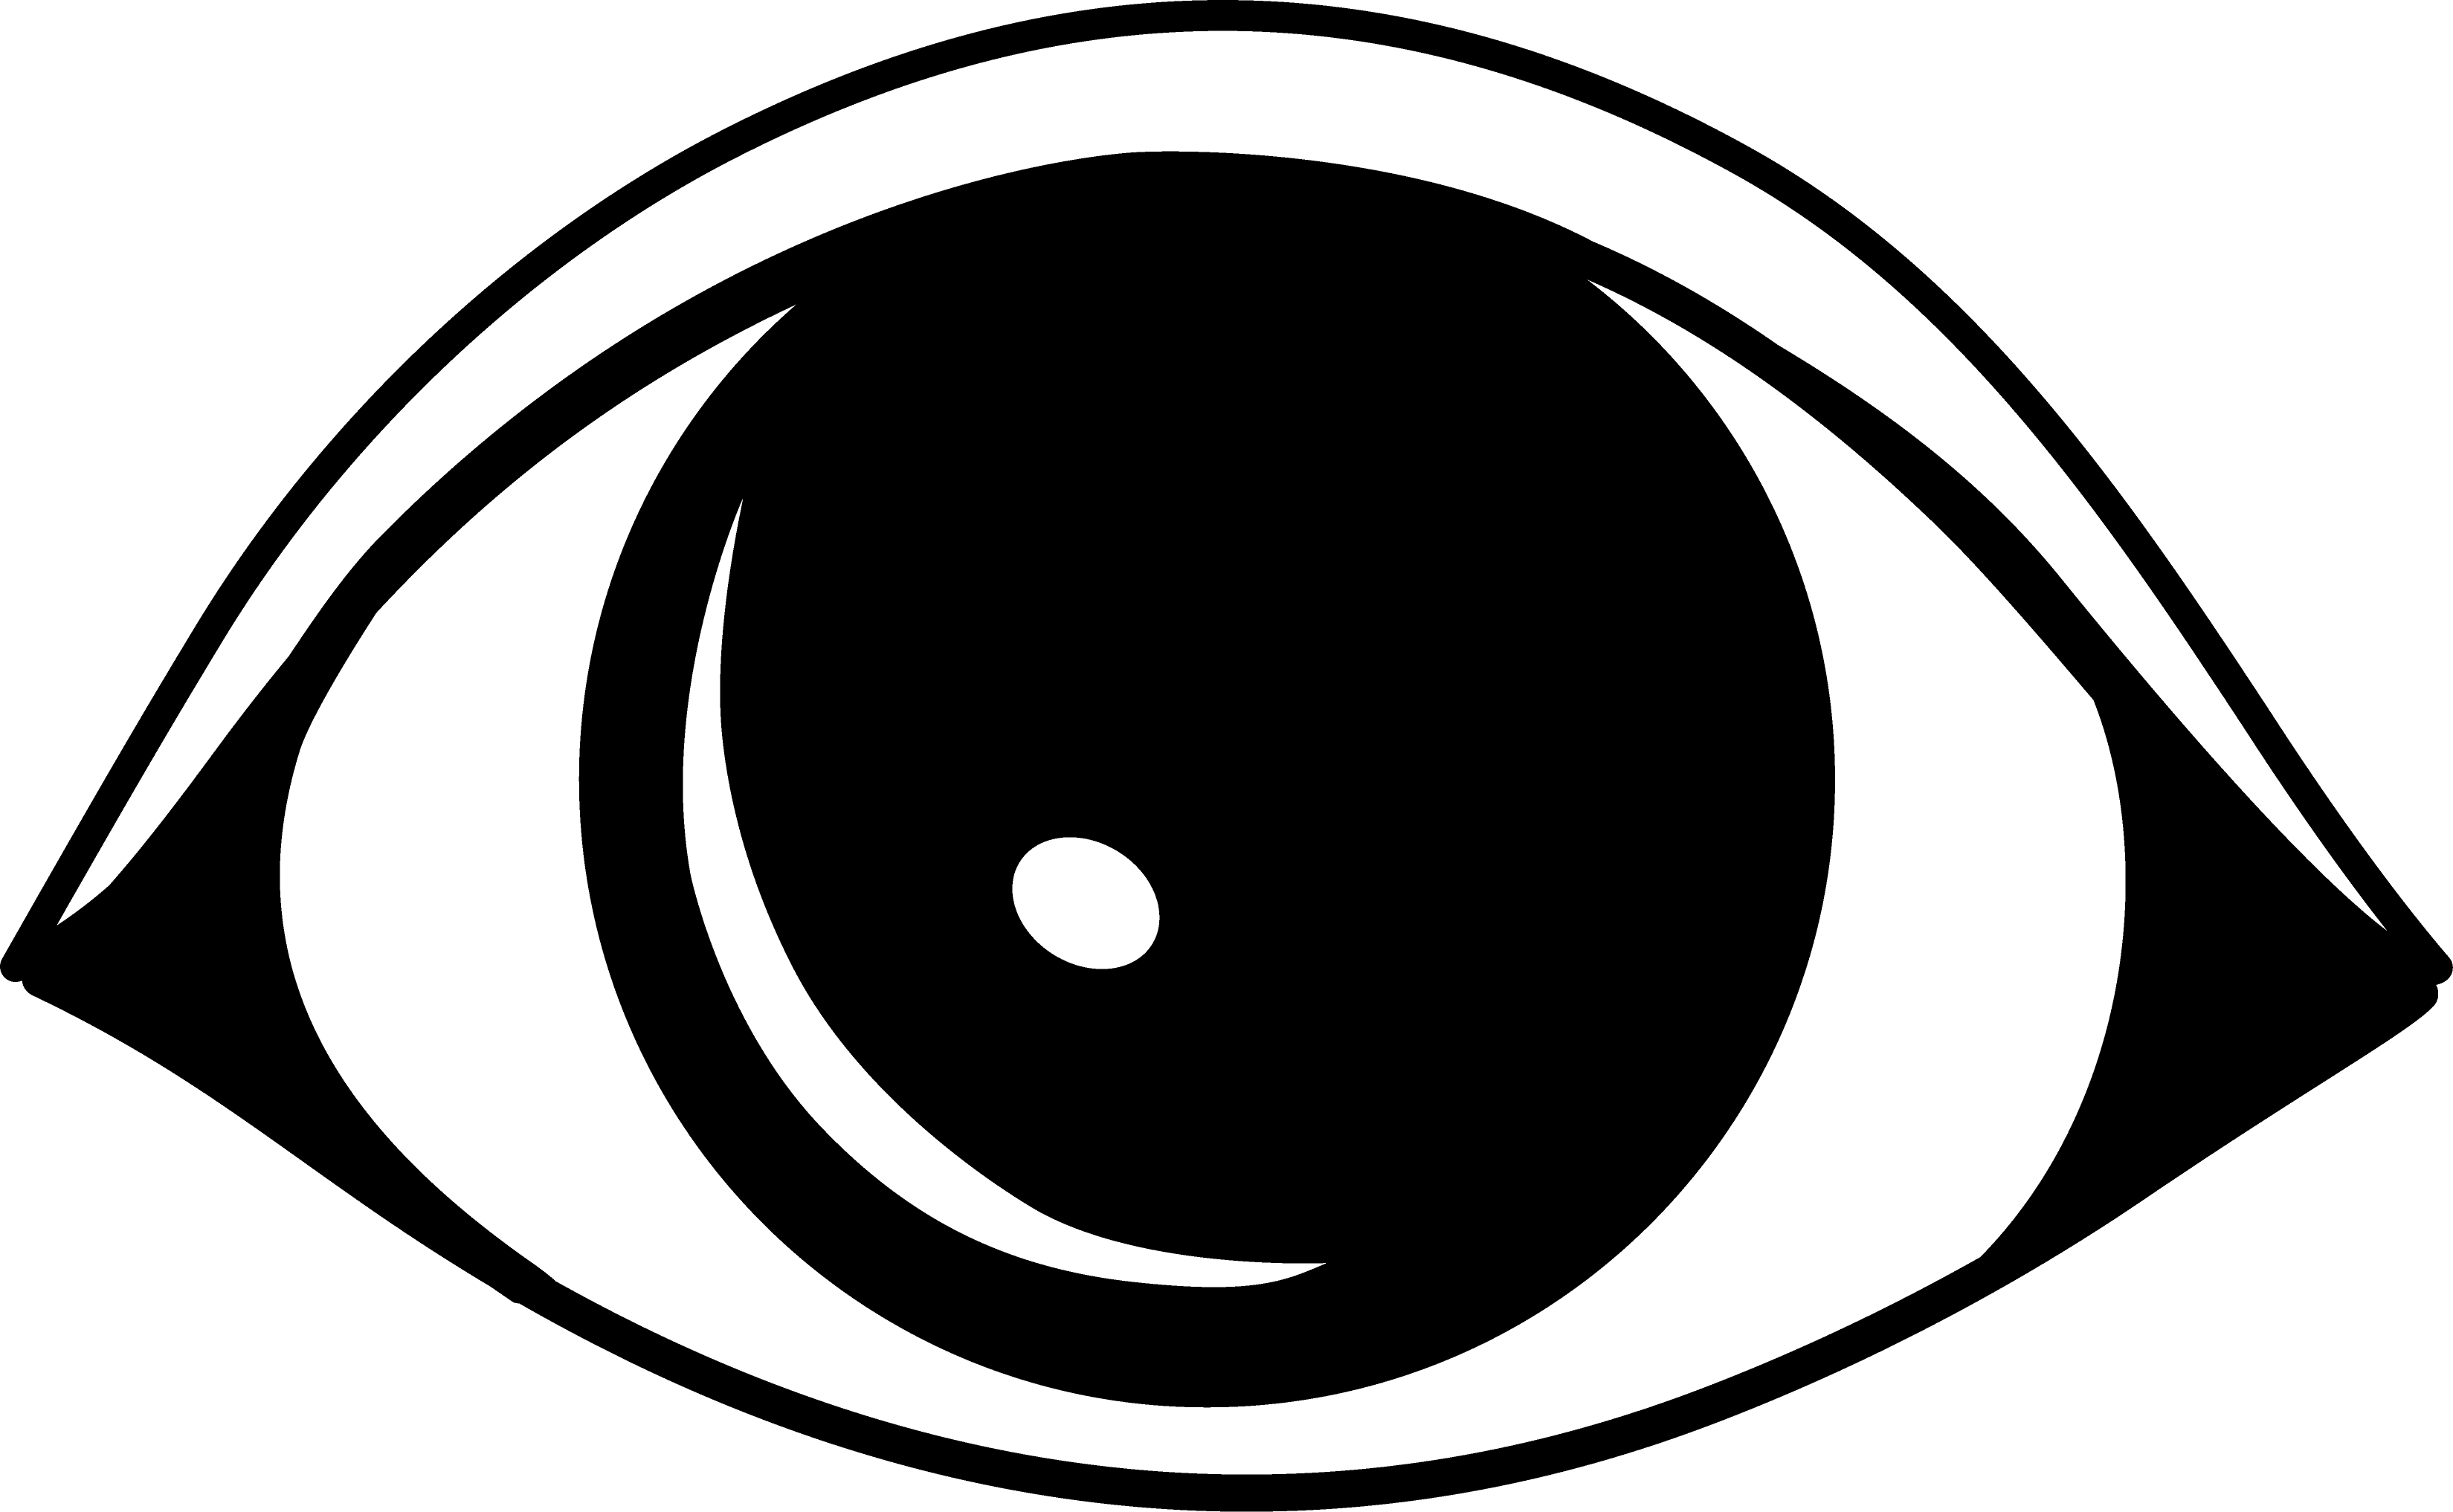 Eyes  black and white eye clip art black and white free clipart images 3